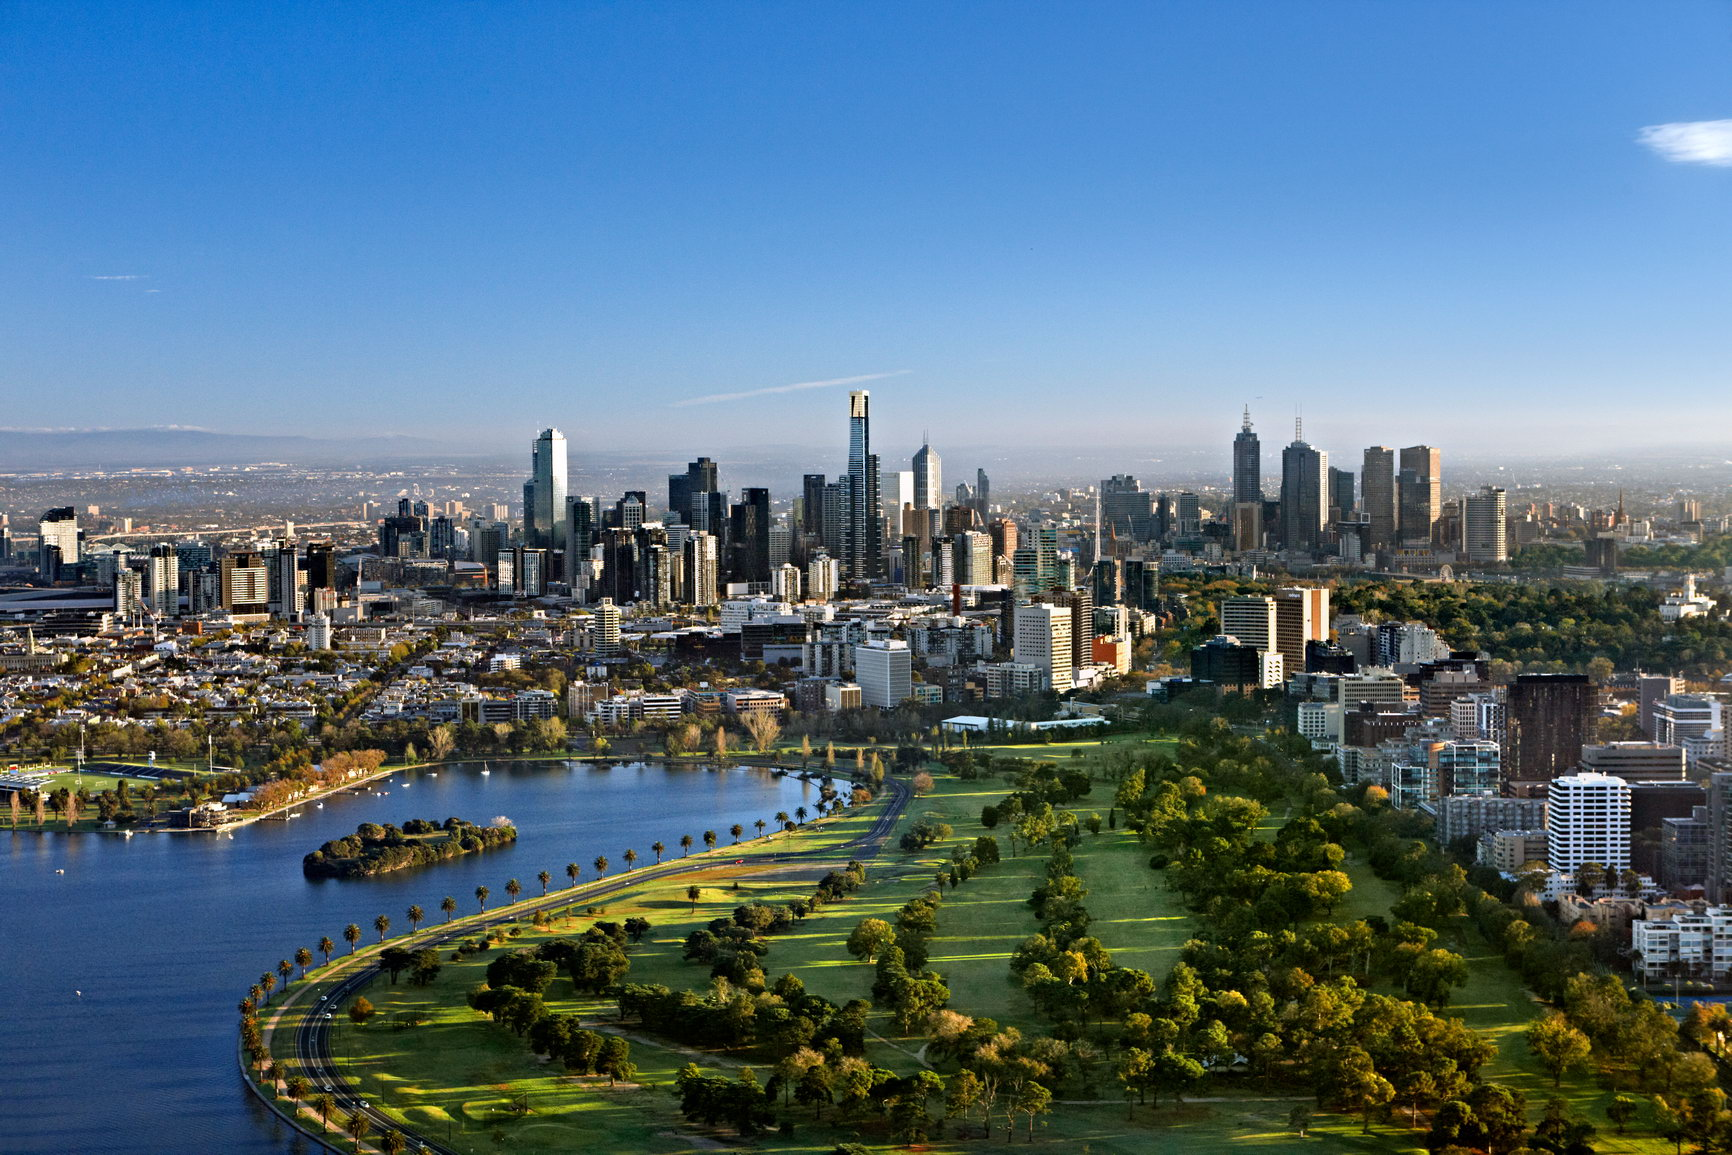 melbourne-se-ngay-cang-it-cay-xanh-1